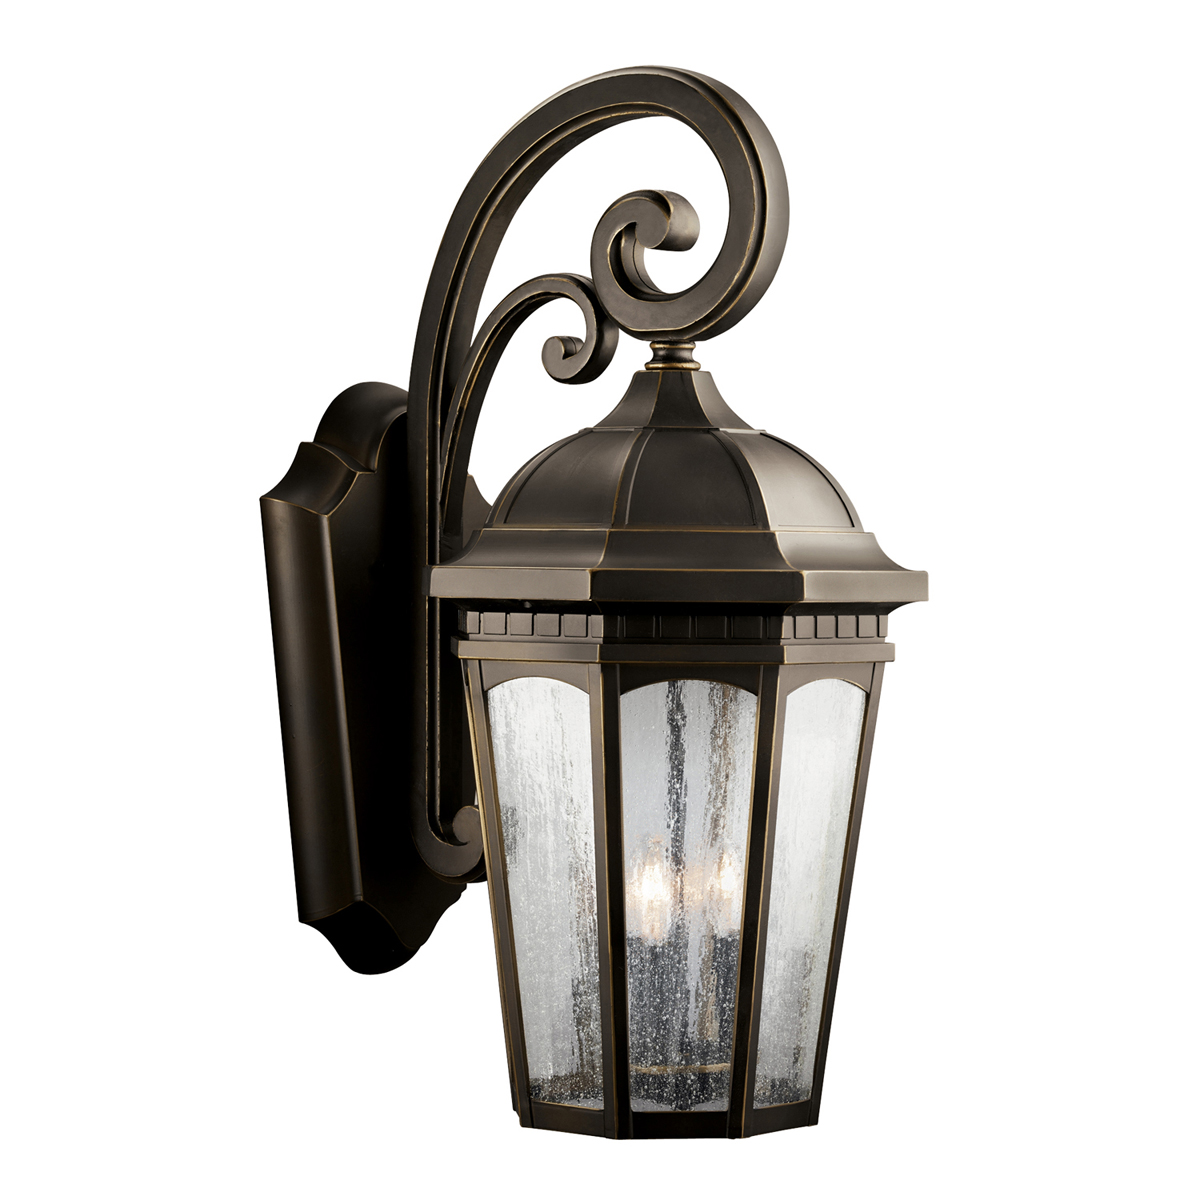 Kichler Lighting (9035RZ) Courtyard 3-Light X-Large Outdoor Wall Sconce in Rubbed Bronze